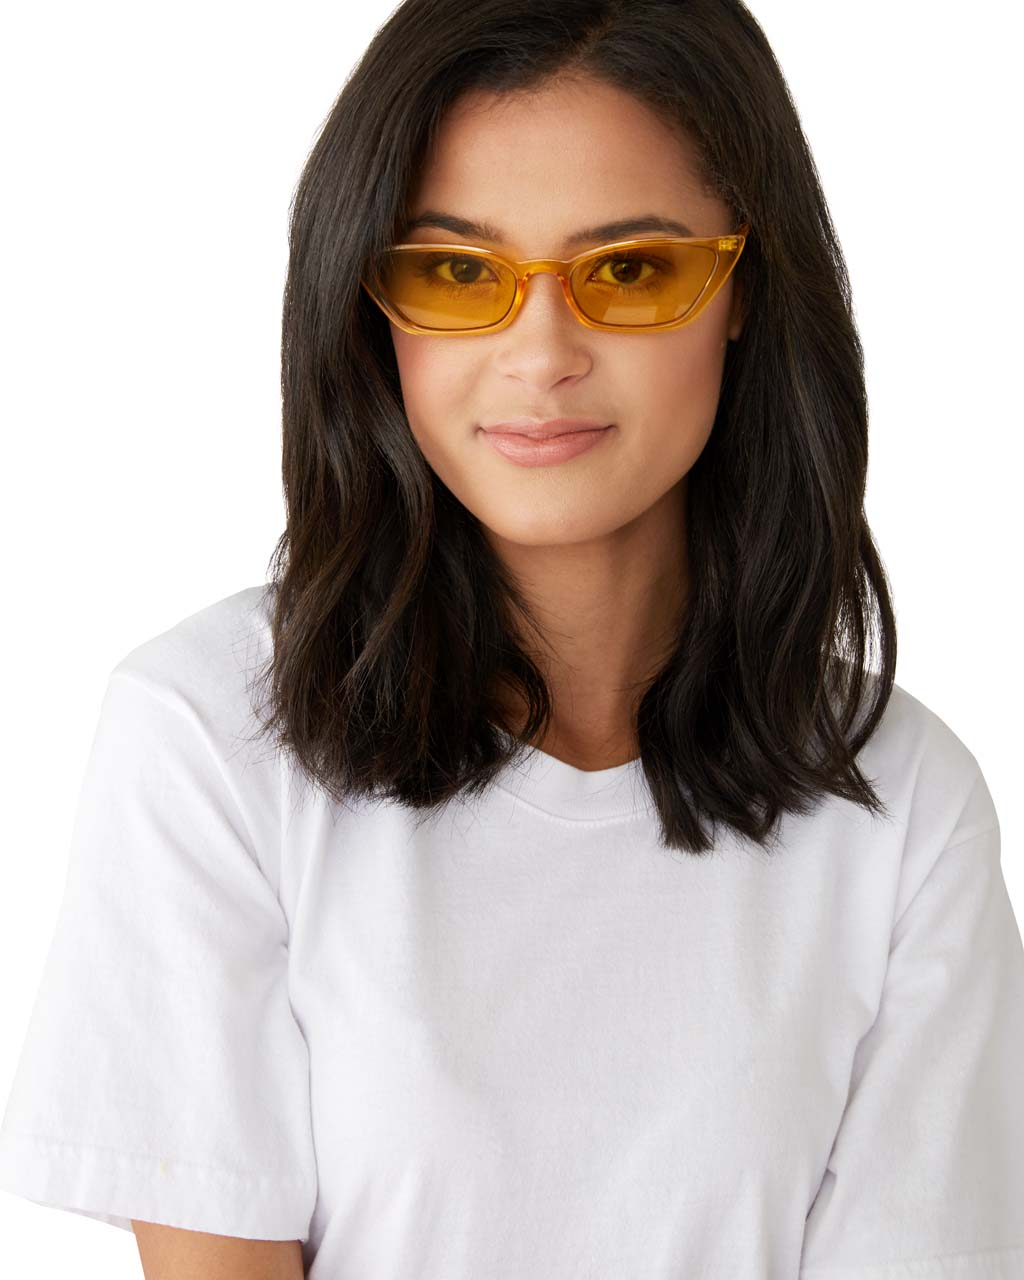 model wearing transparent yellow cat-eye sunglasses with yellow lenses